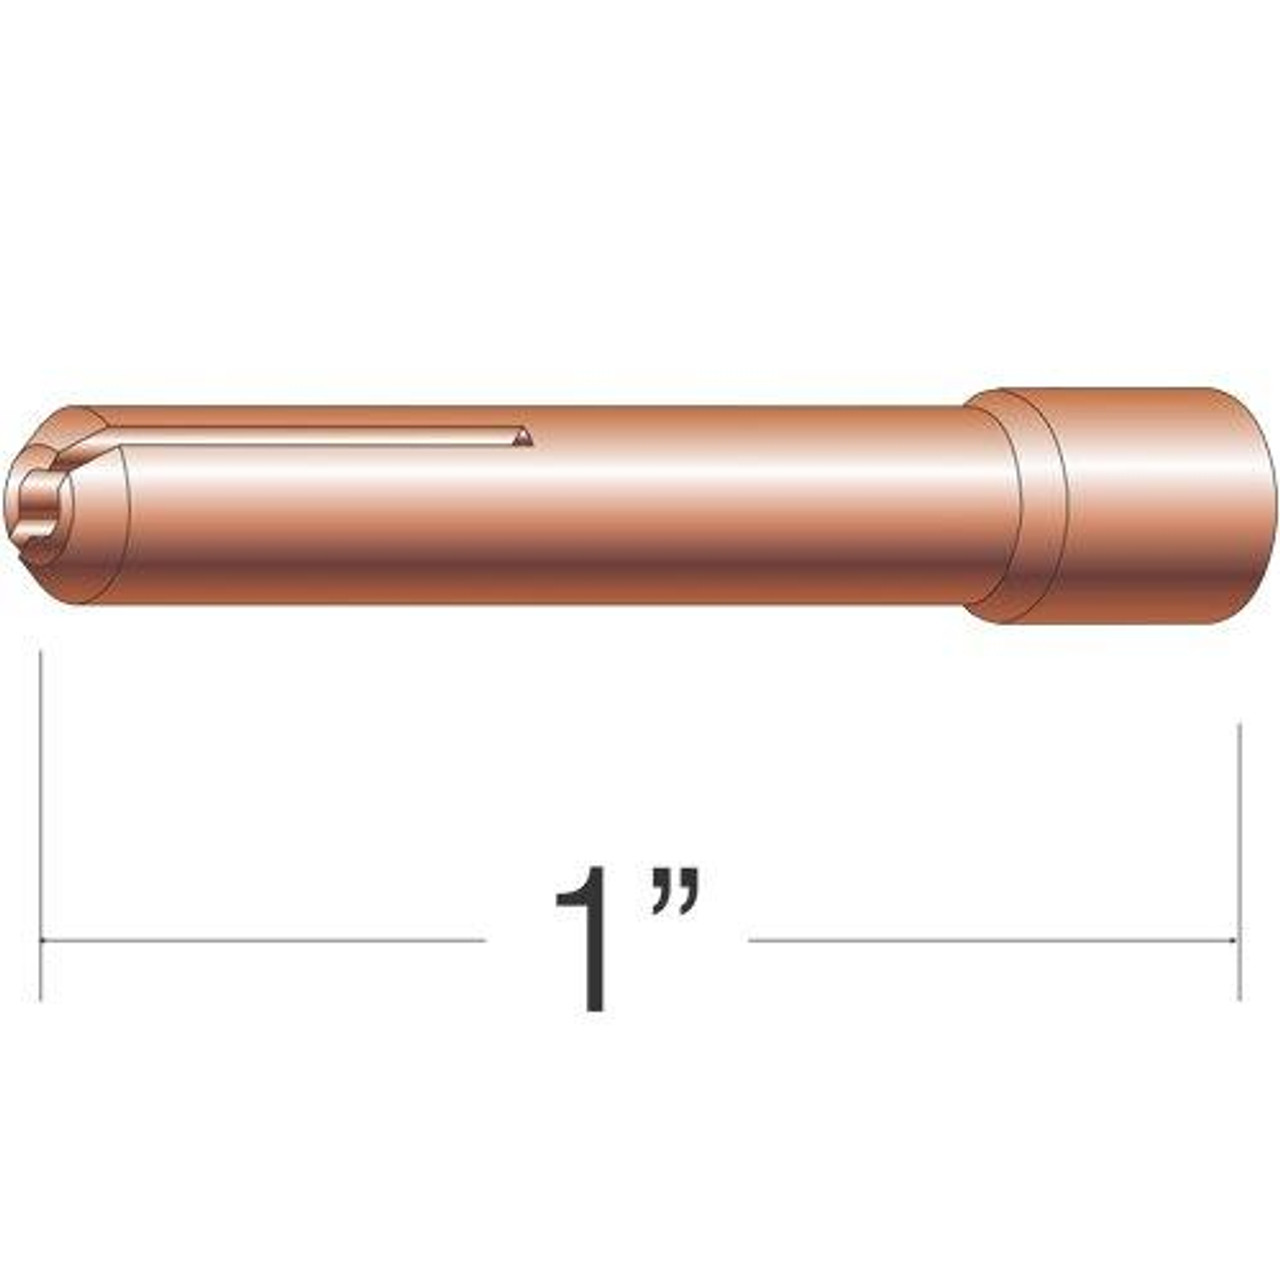 Profax 13N21 Collet .040 for 9-20-25 Series TIG Torches - 10 Pack